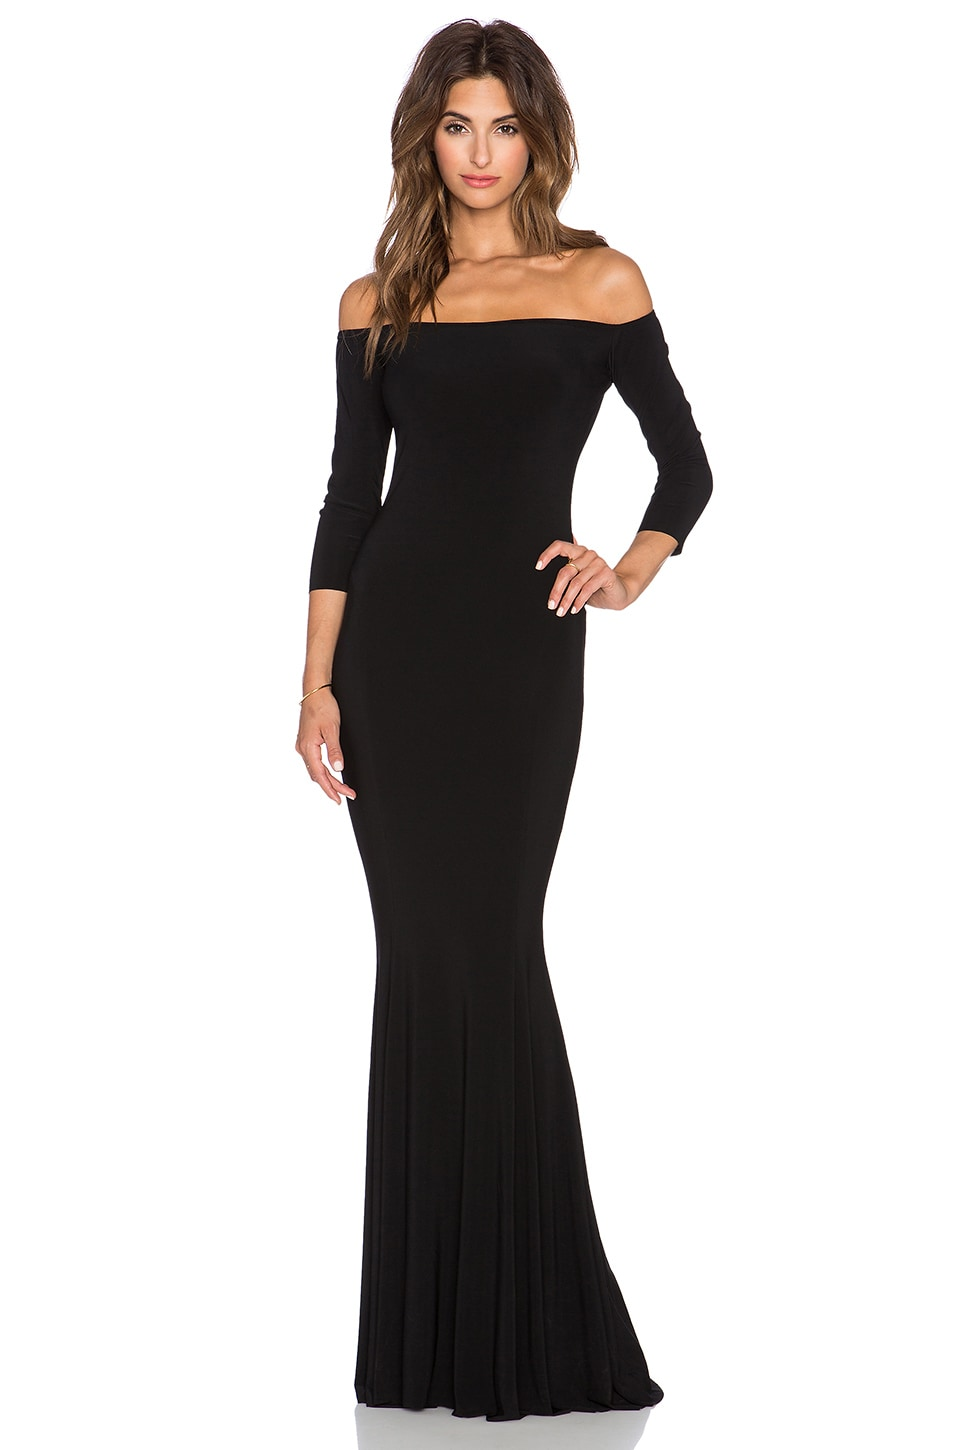 NORMA KULTURE Off The Shoulder Fishtail Gown